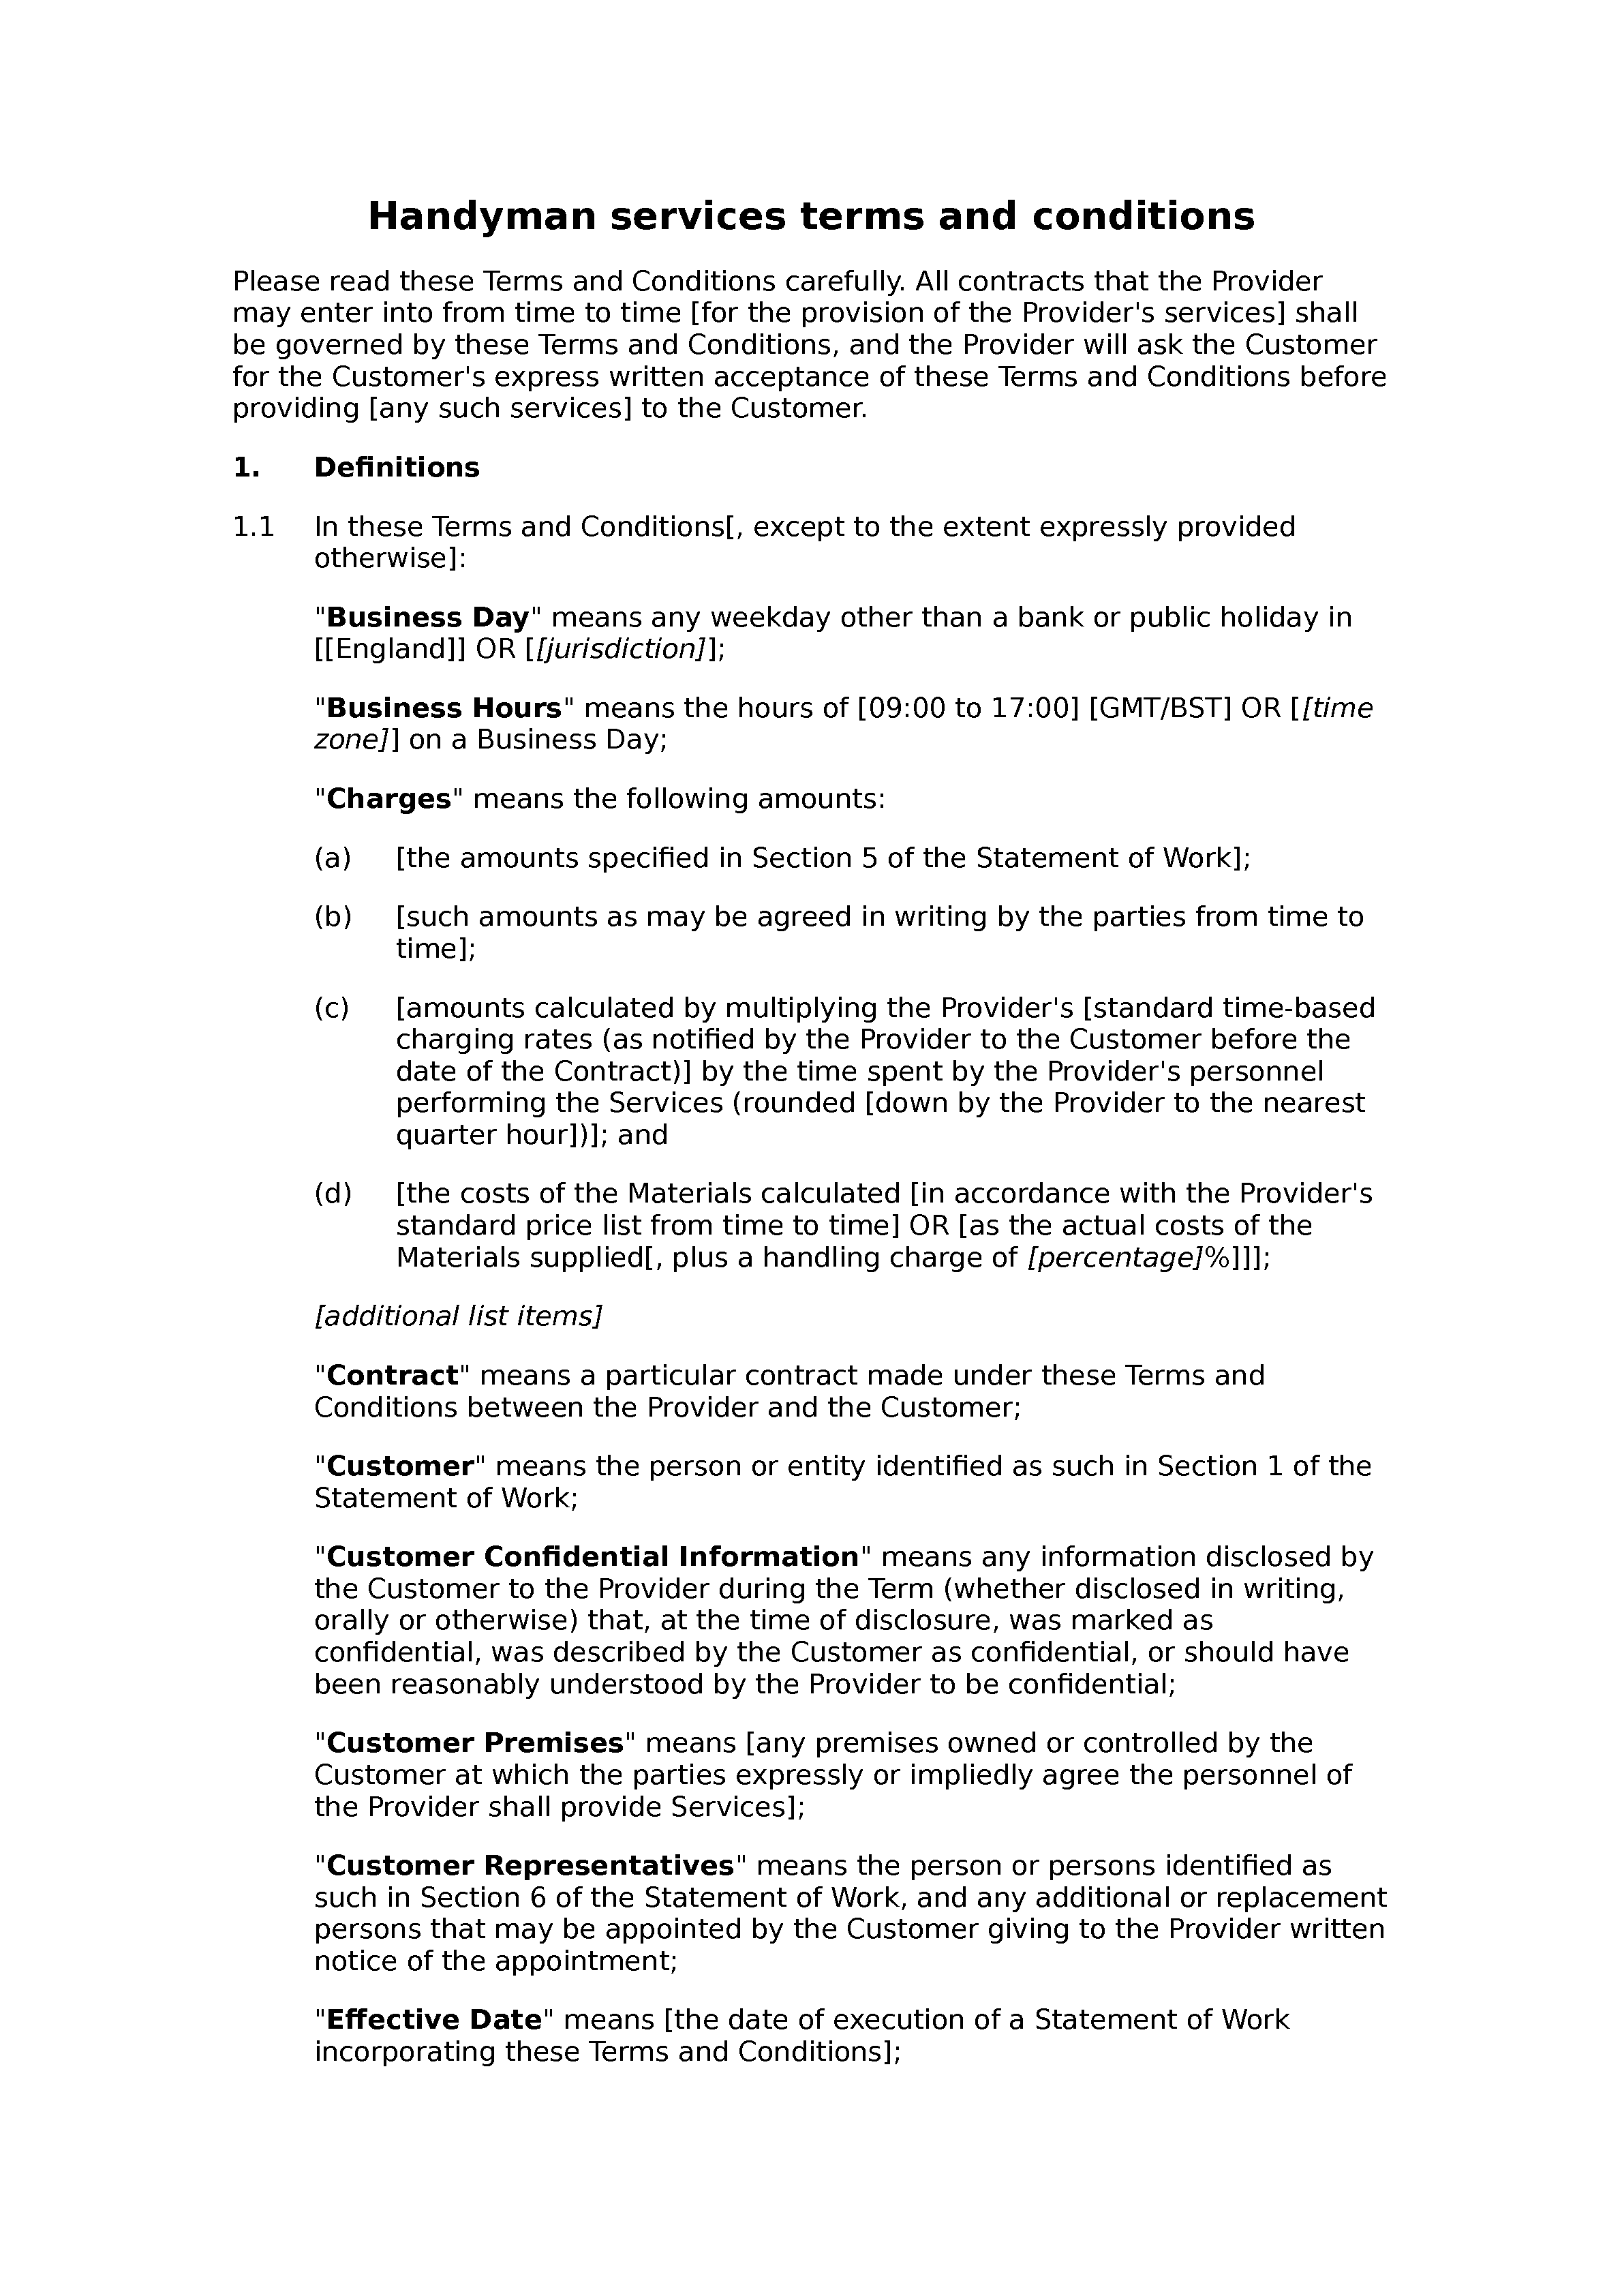 Handyman services terms and conditions docular for Term and condition template